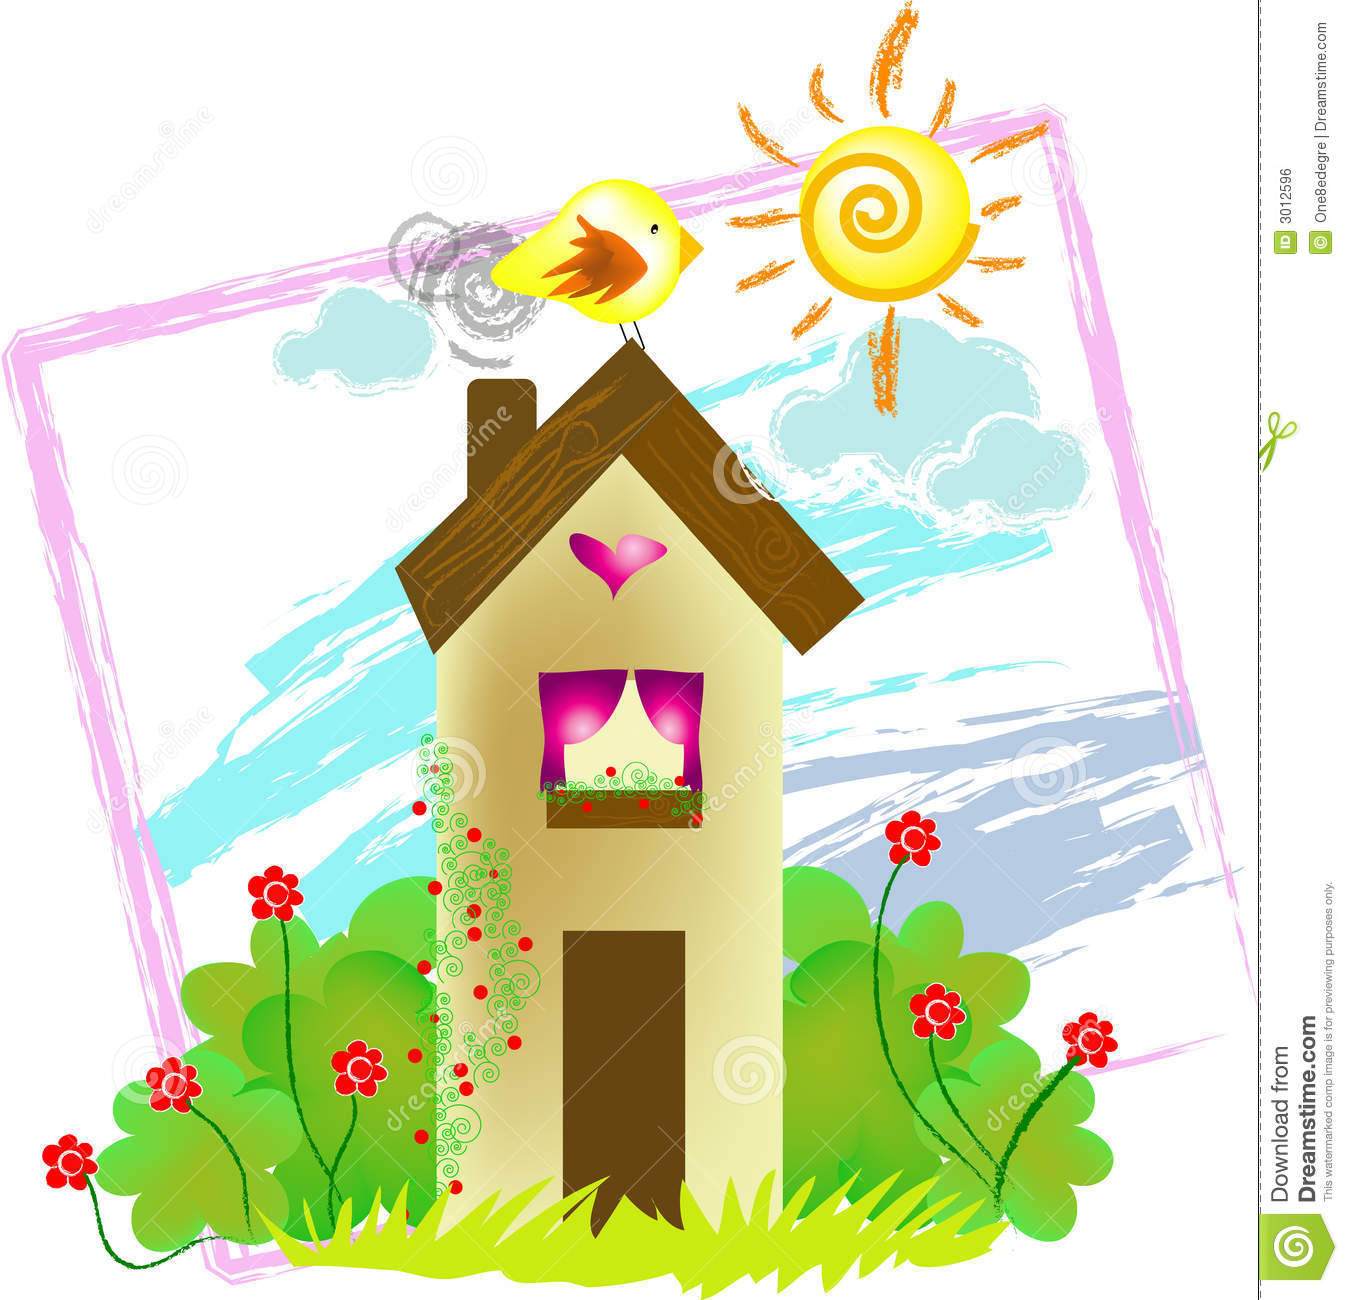 Royalty Free Stock Image Home Sweet Home Image3012596 on 2d house drawing